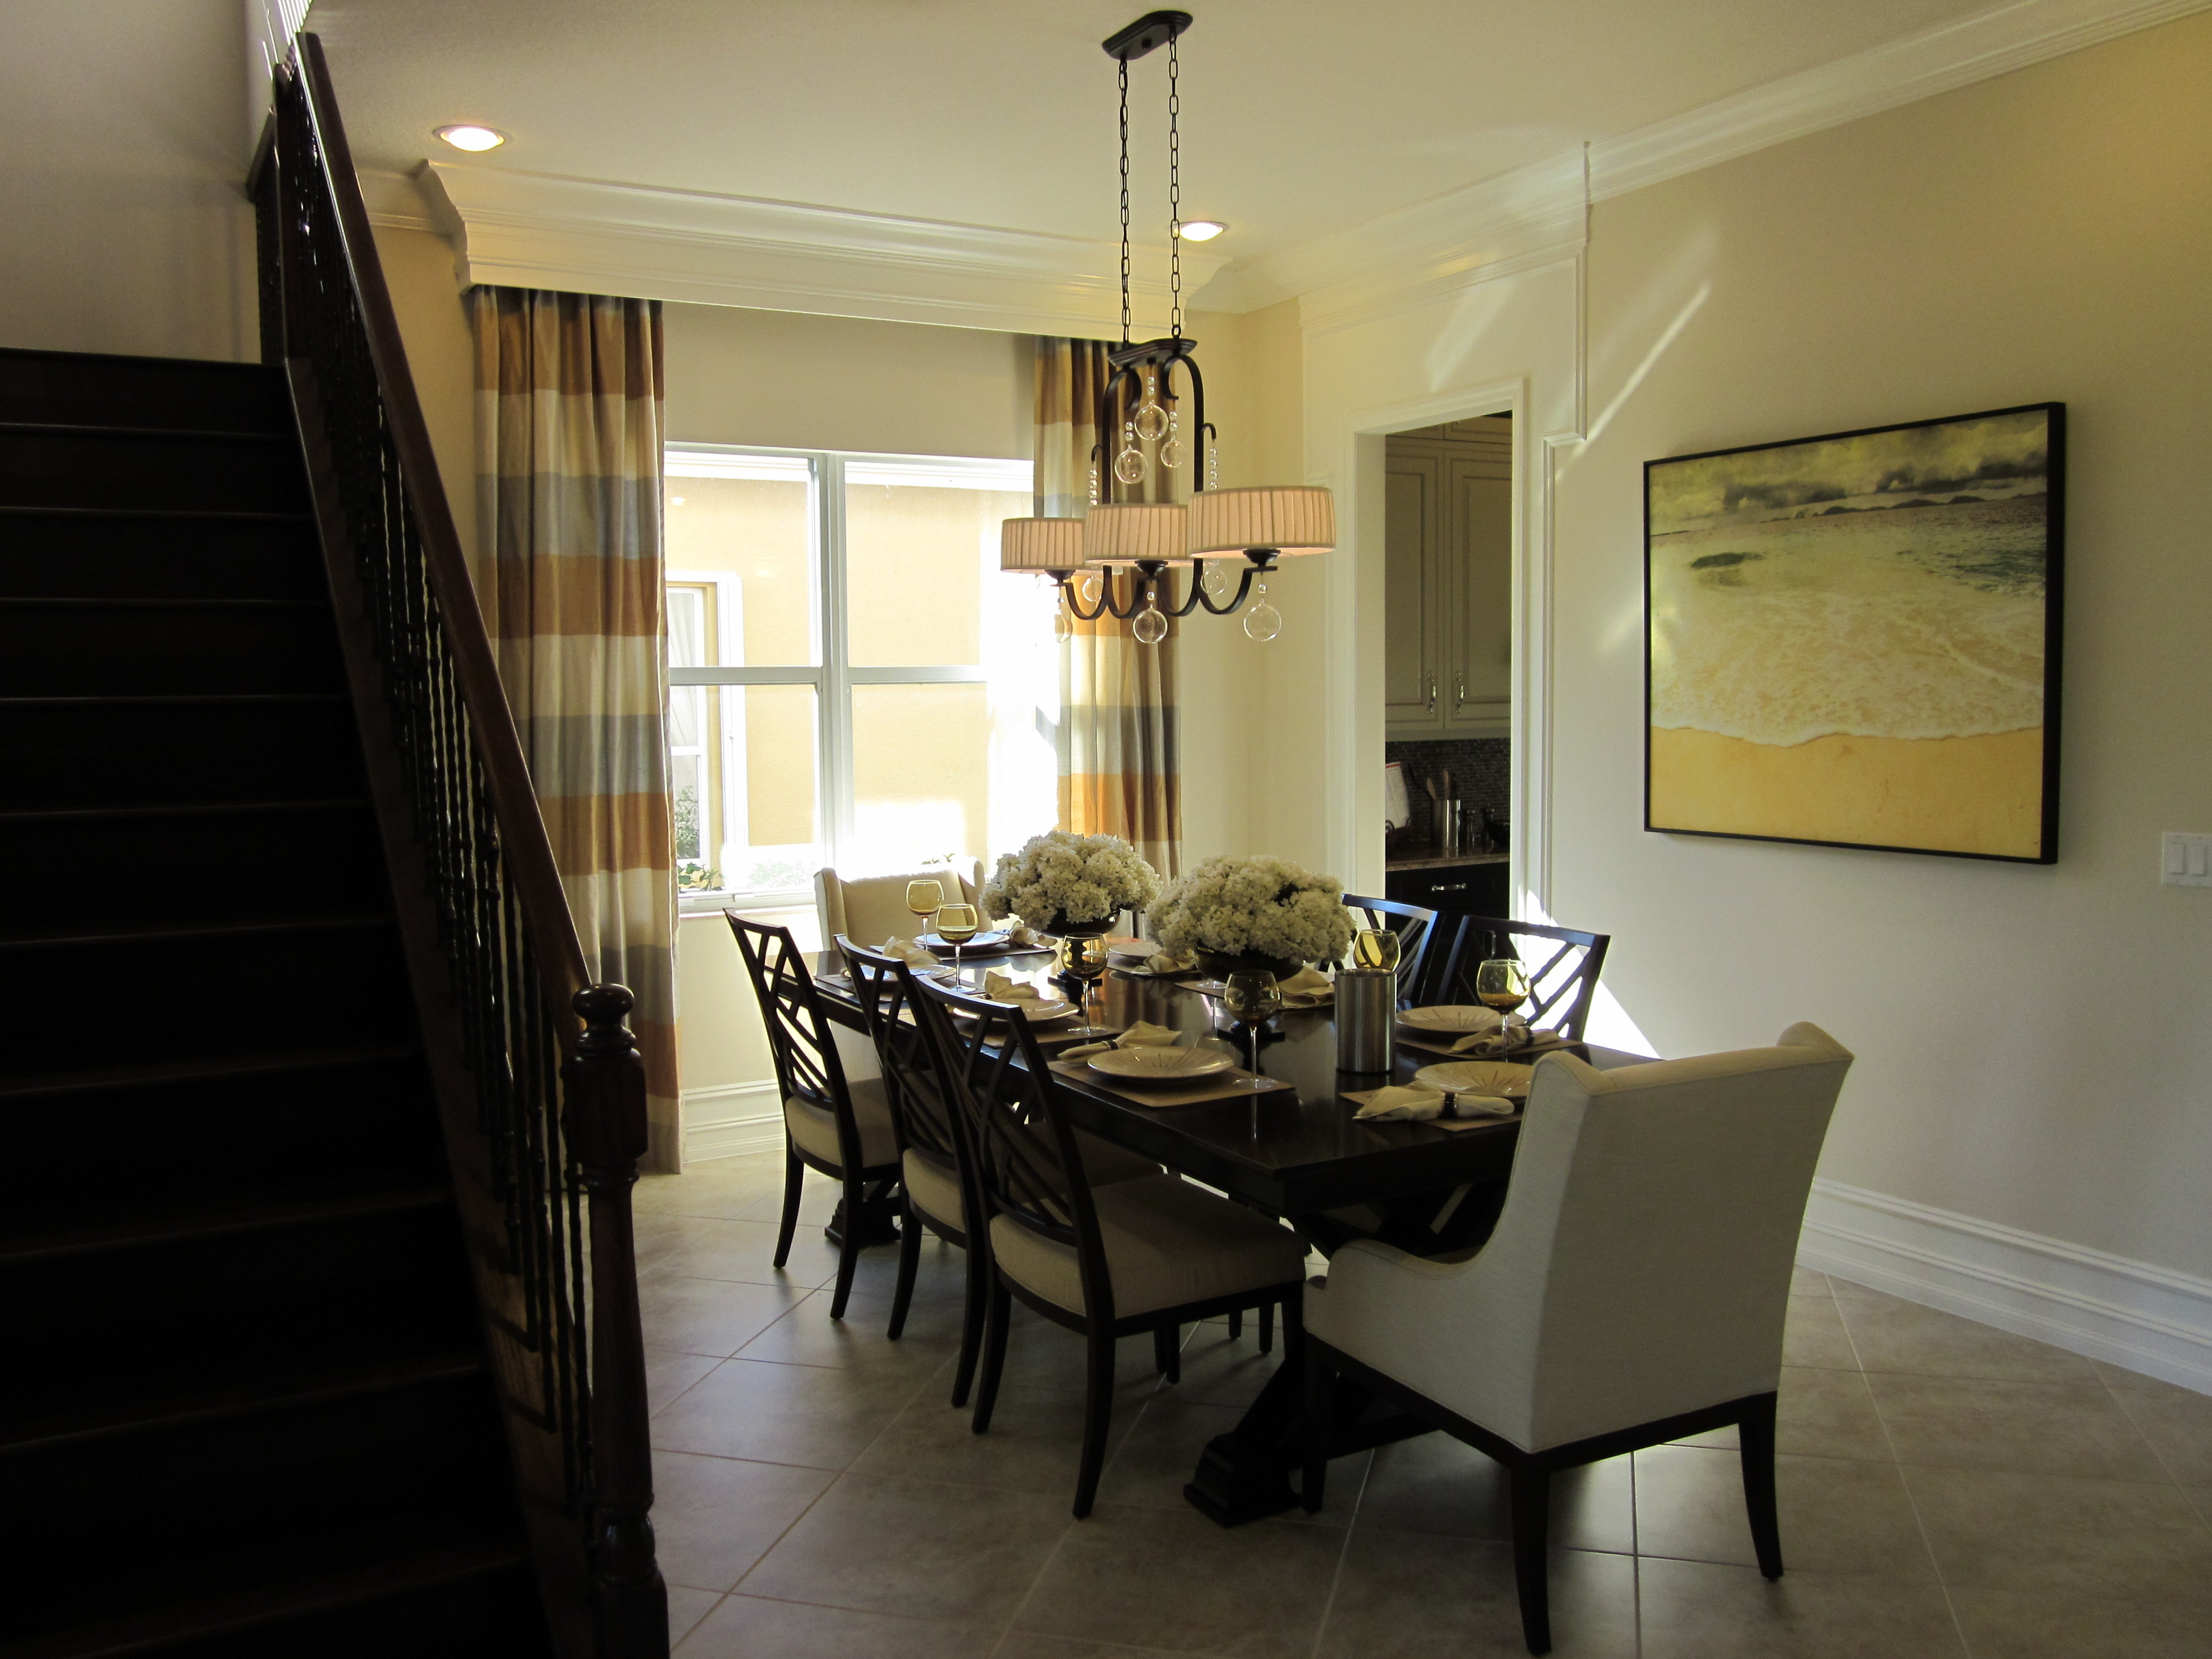 Best ideas about Dining Room Chandelier . Save or Pin Decorating Tip of the Week Now.